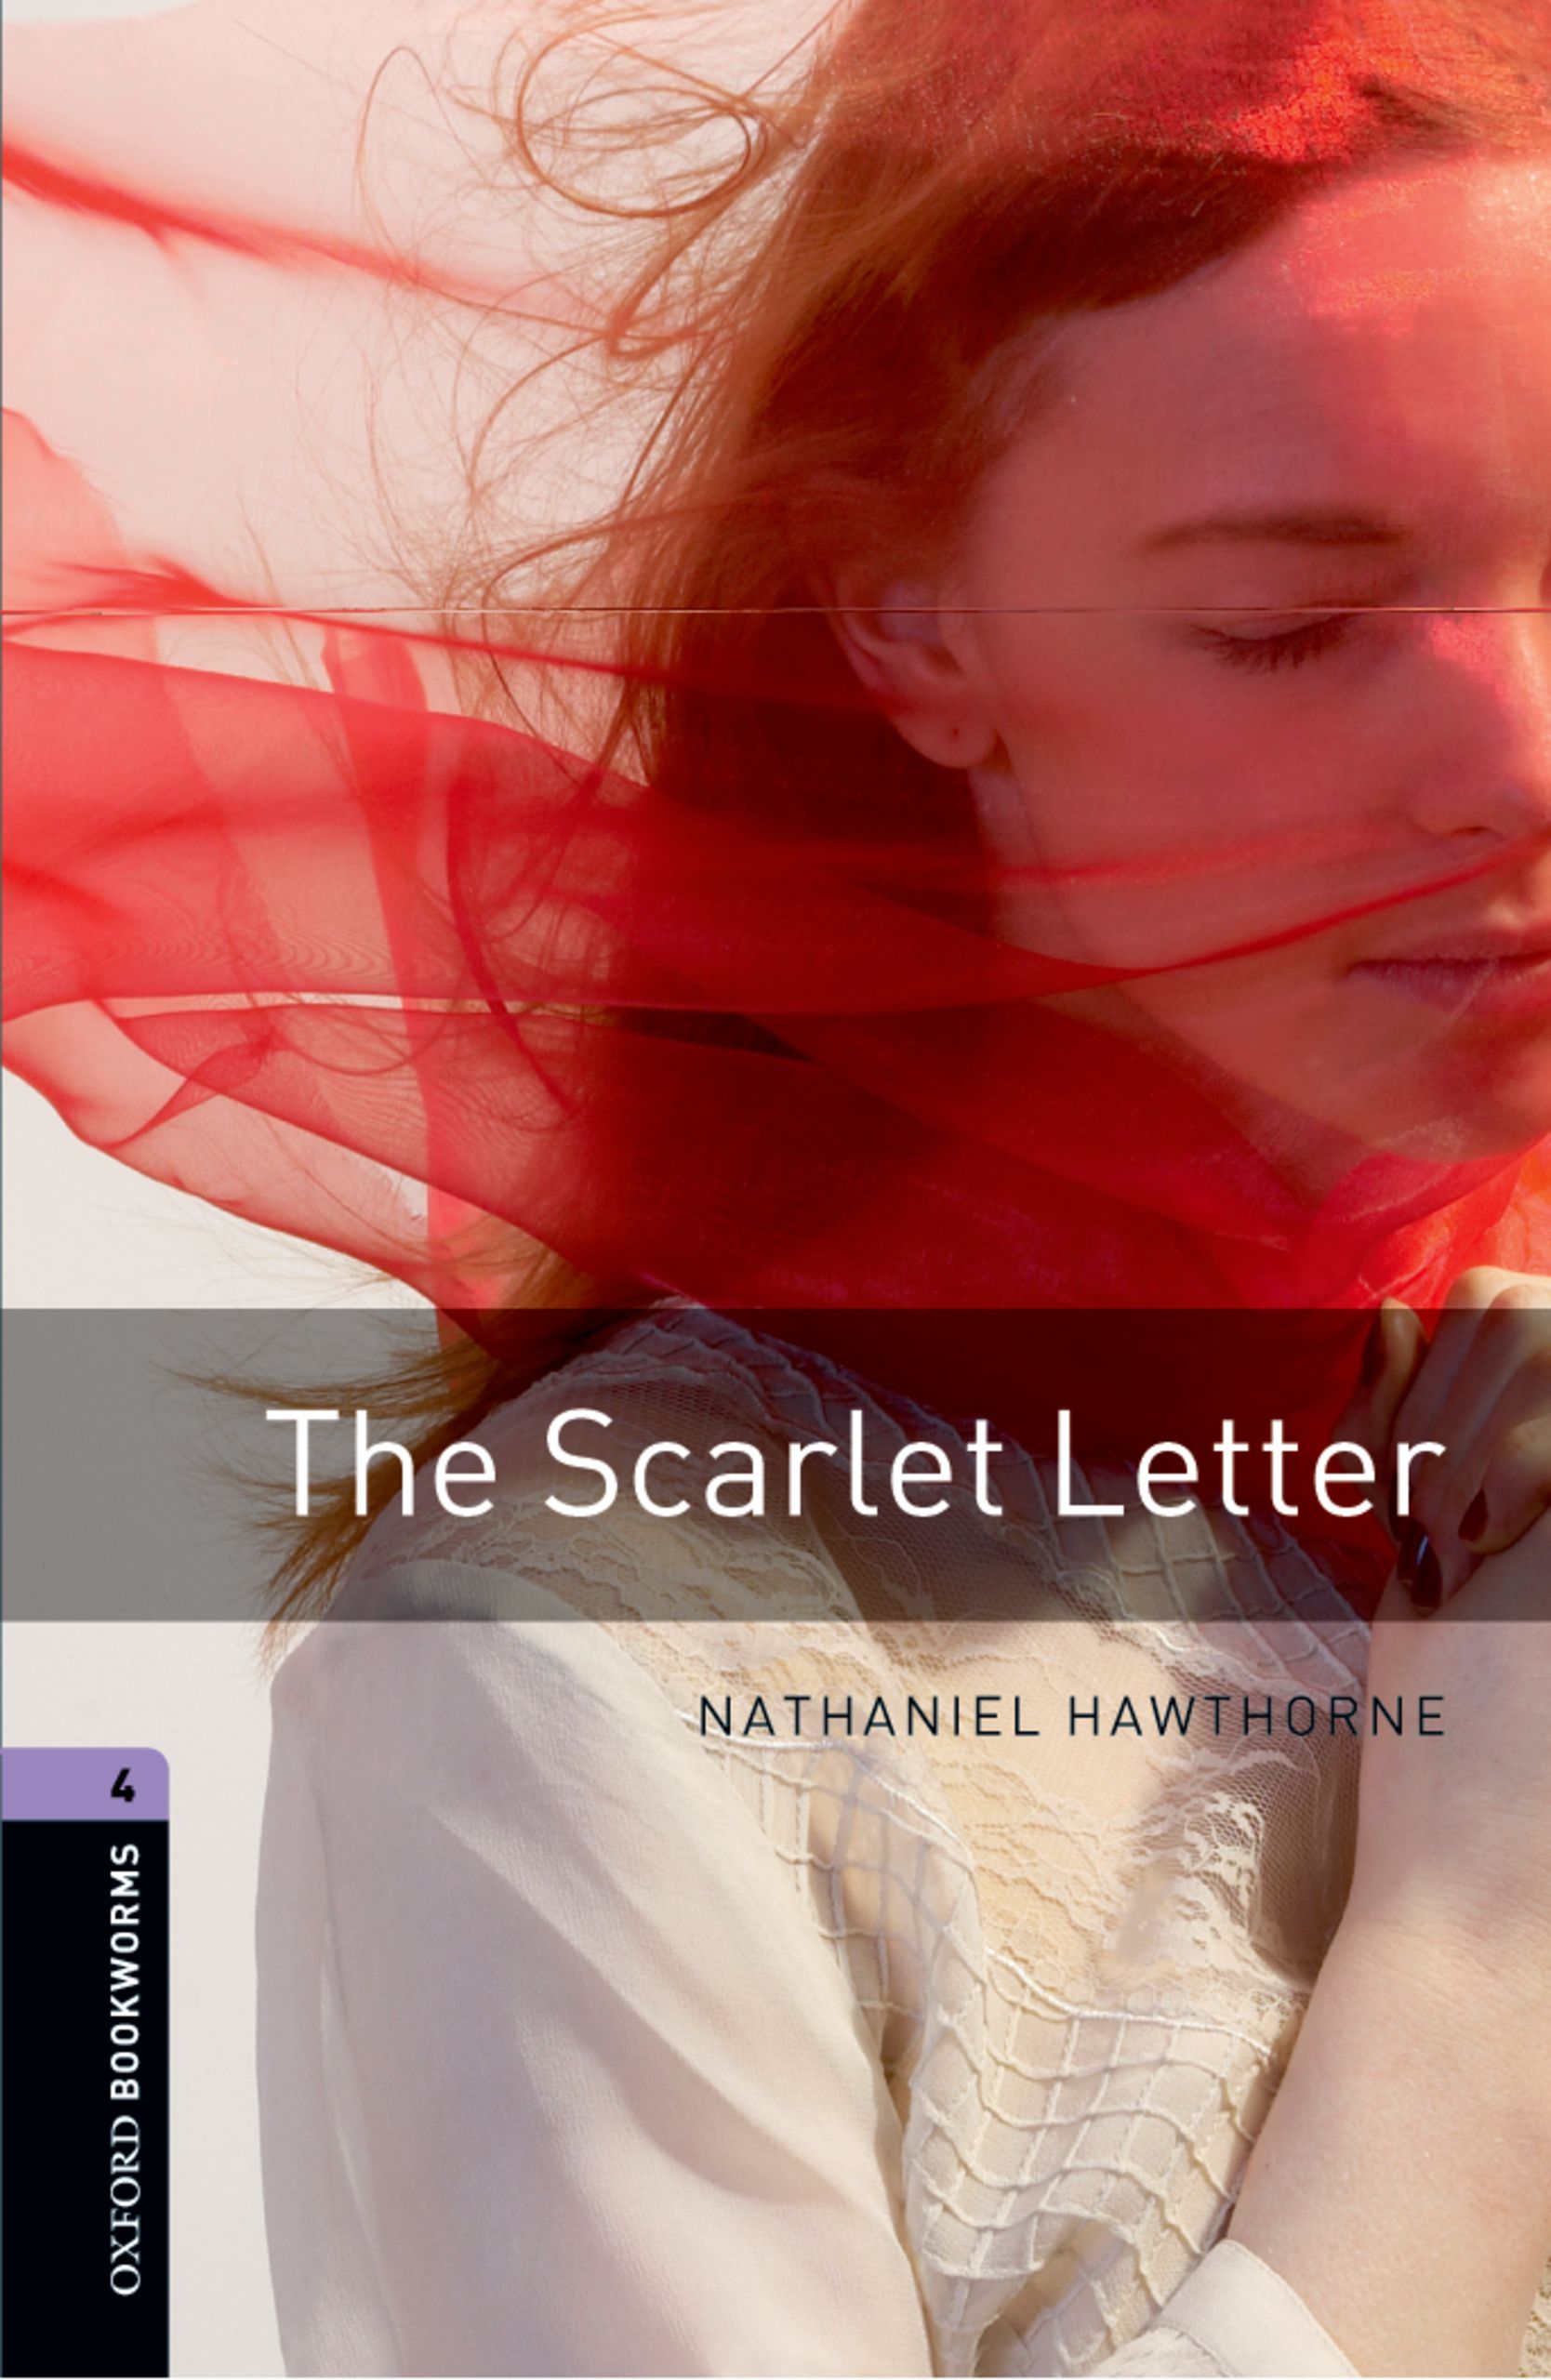 Nathaniel Hawthorne The Scarlet Letter child labor in automobiles of bangladesh